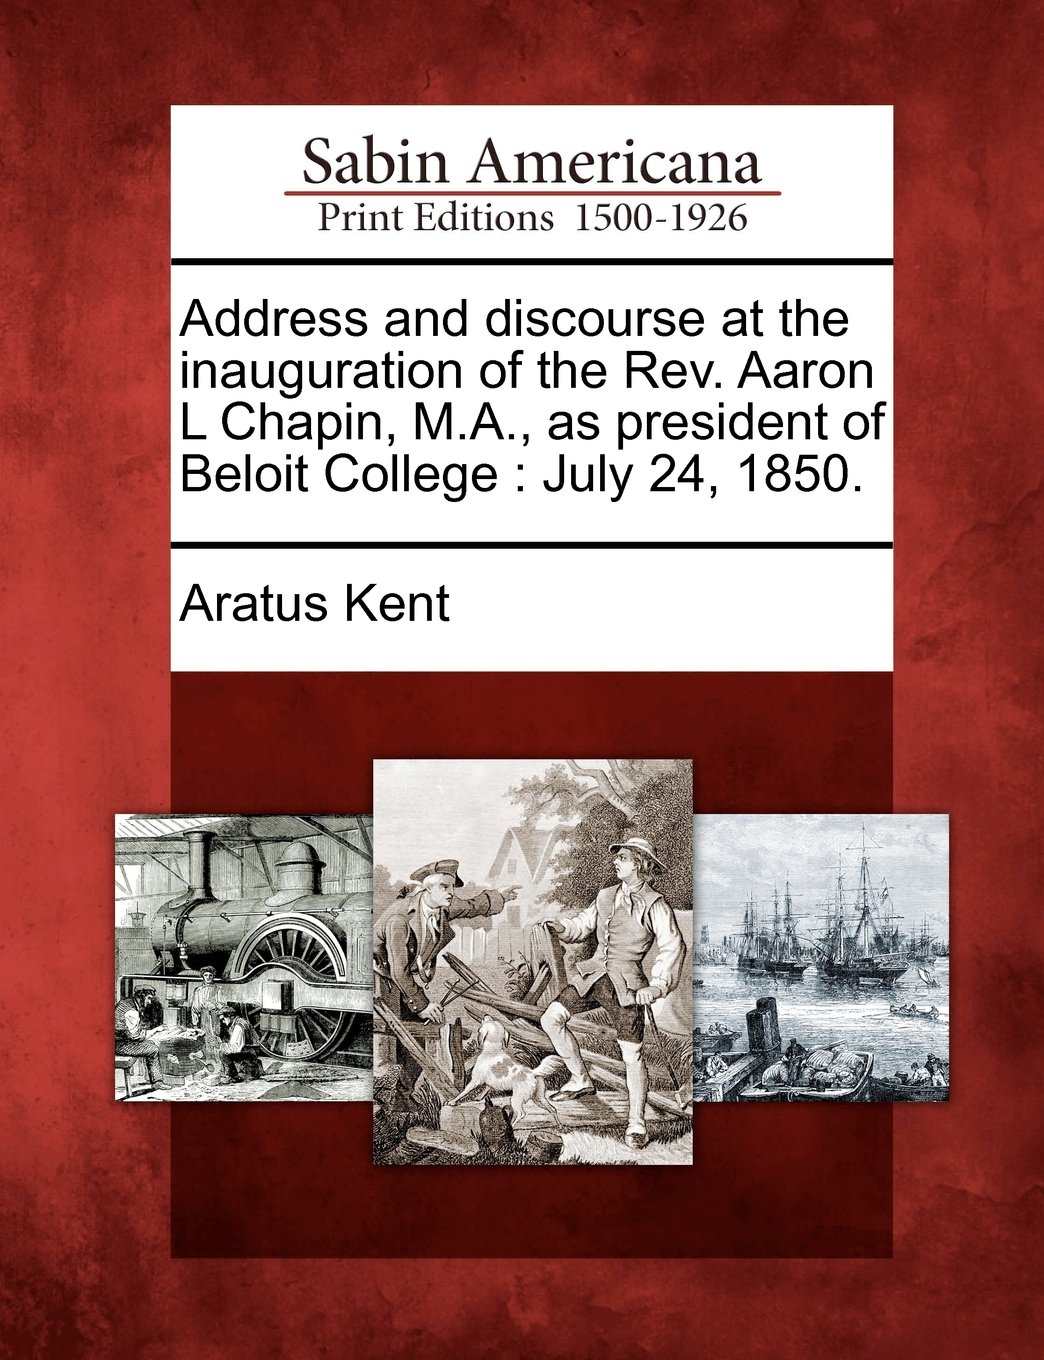 Address and discourse at the inauguration of the Rev. Aaron L Chapin, M.A., as president of Beloit College: July 24, 1850. ebook